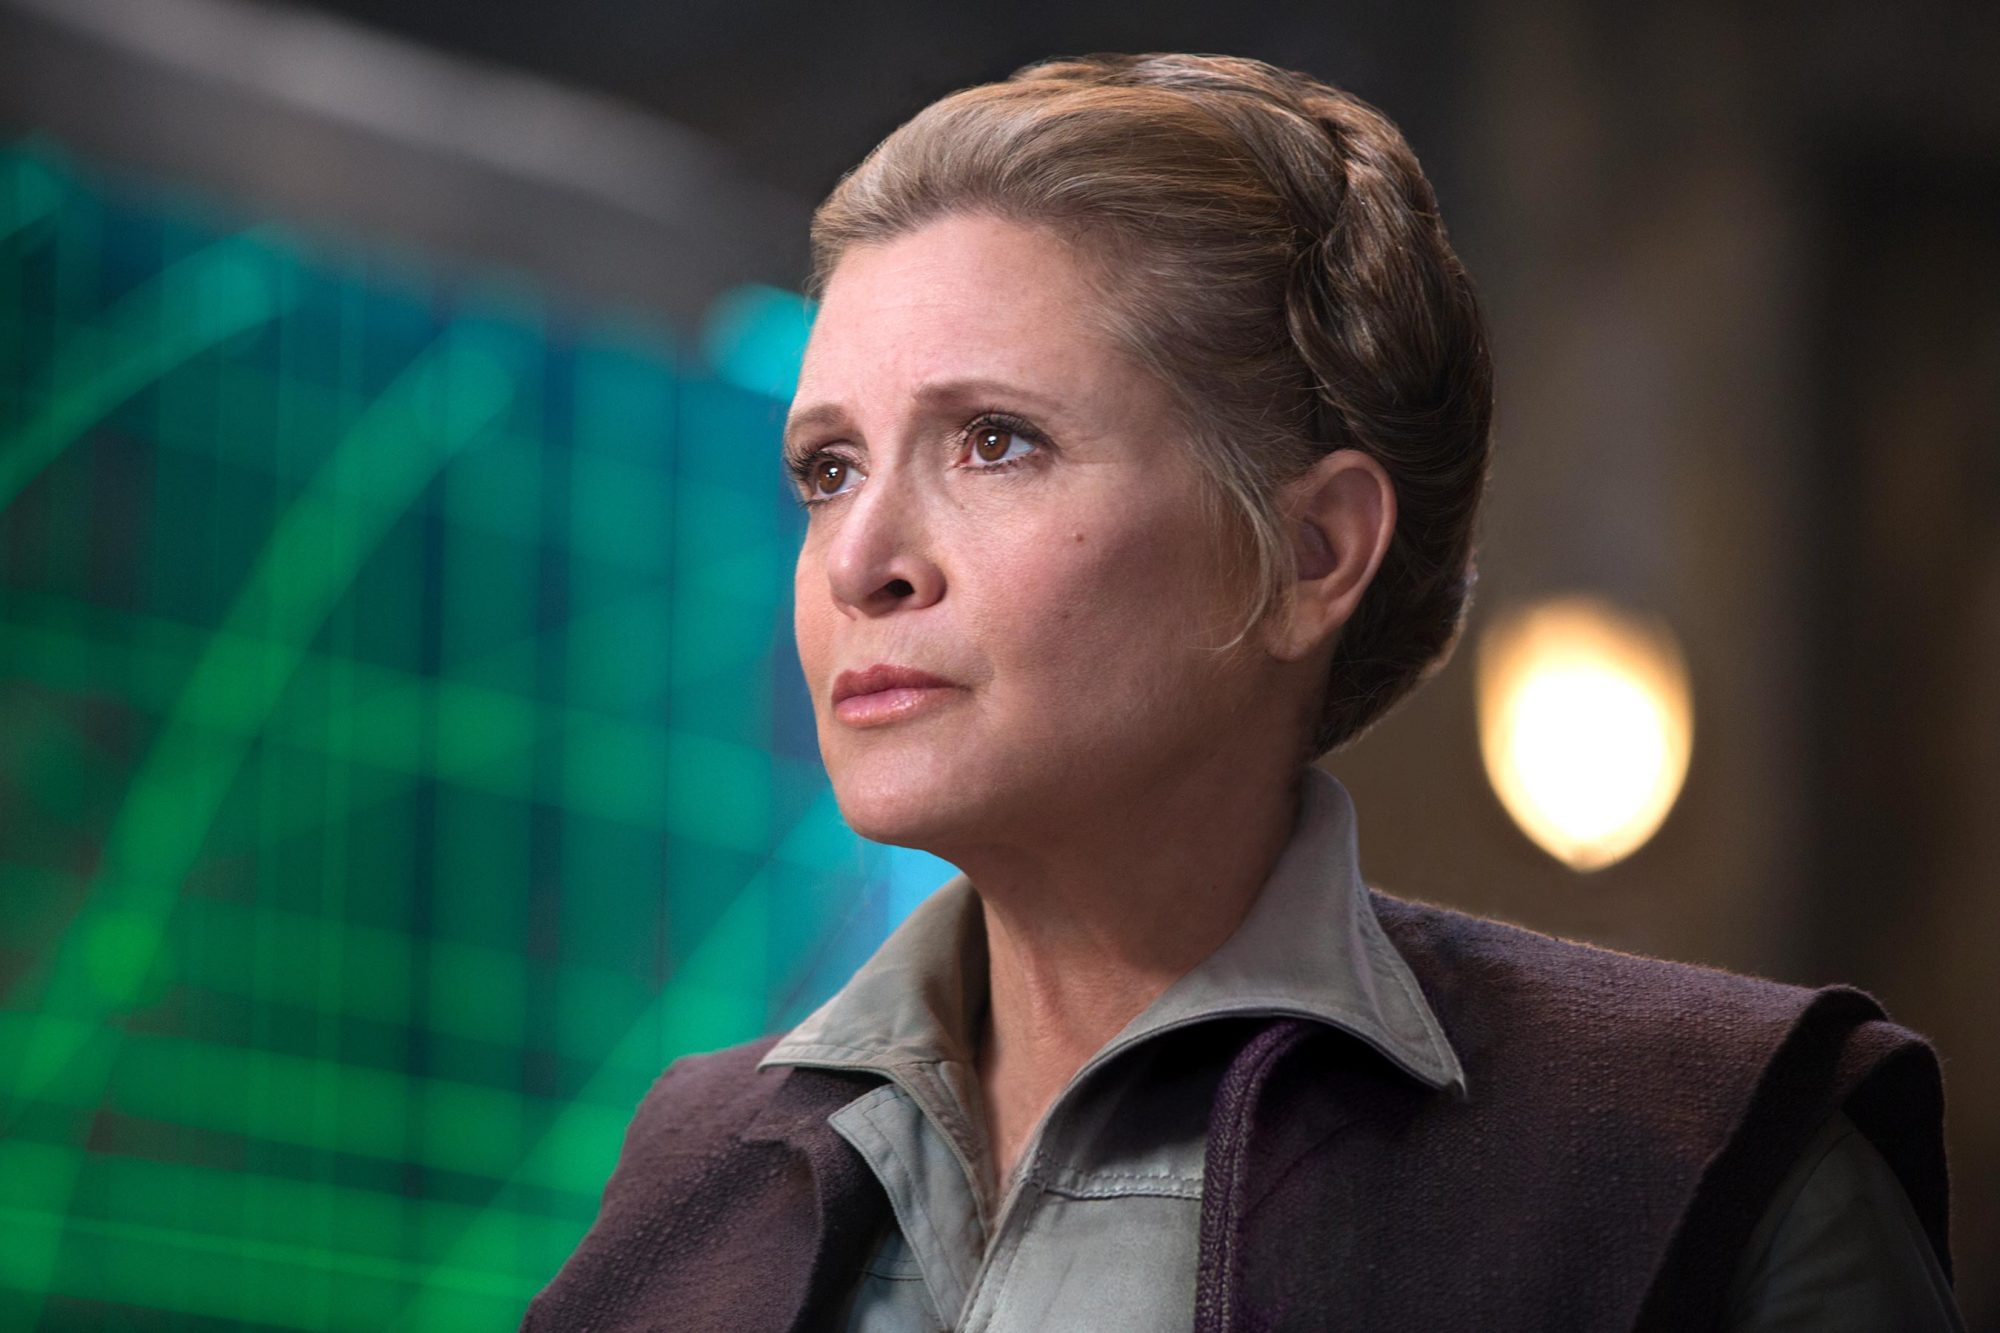 Star Wars: The Force Awakens (2015)Carrie Fisher as Leia